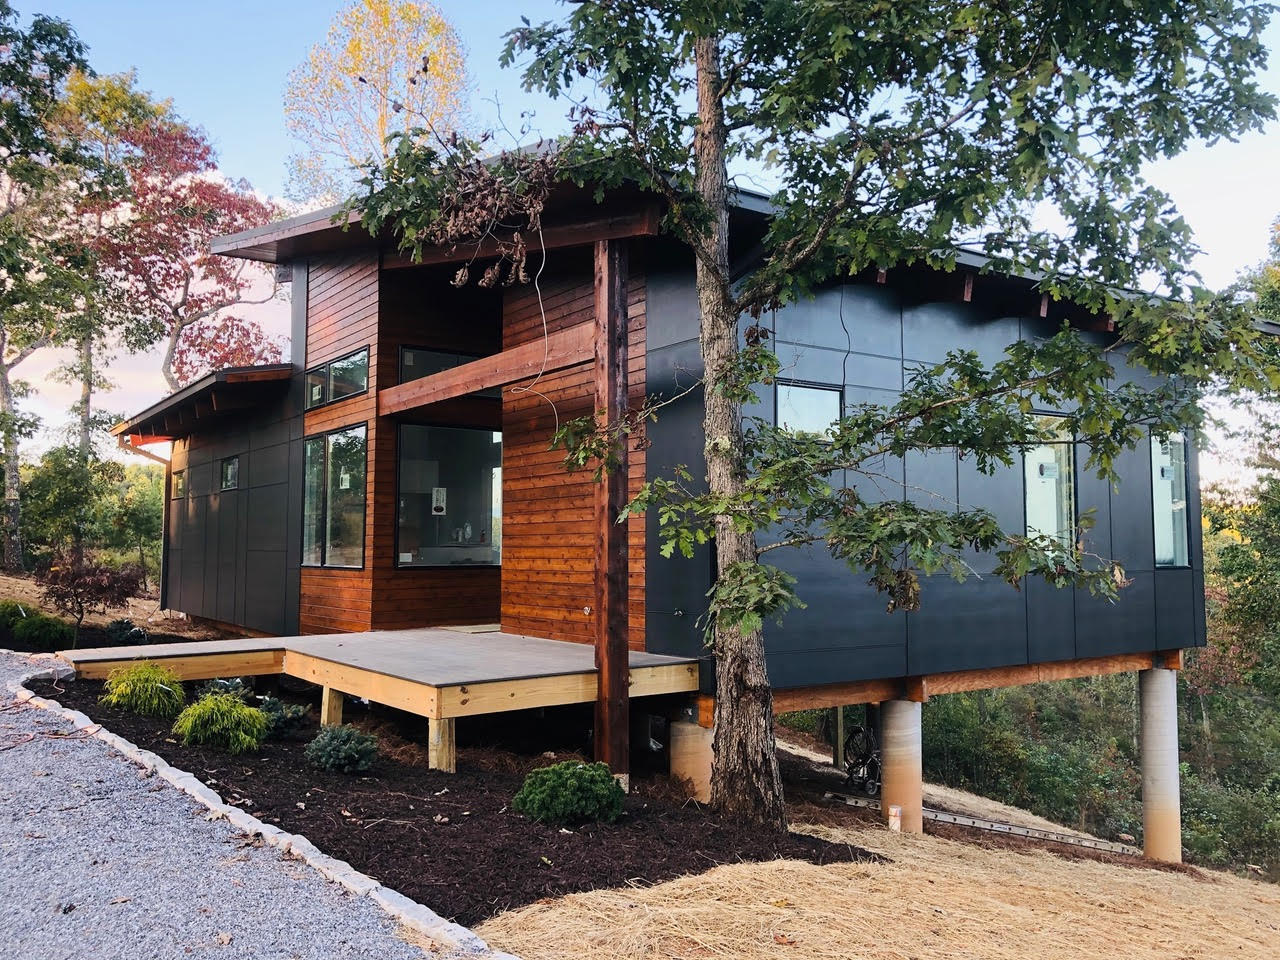 A small modern home on a hill surrounded by woods.